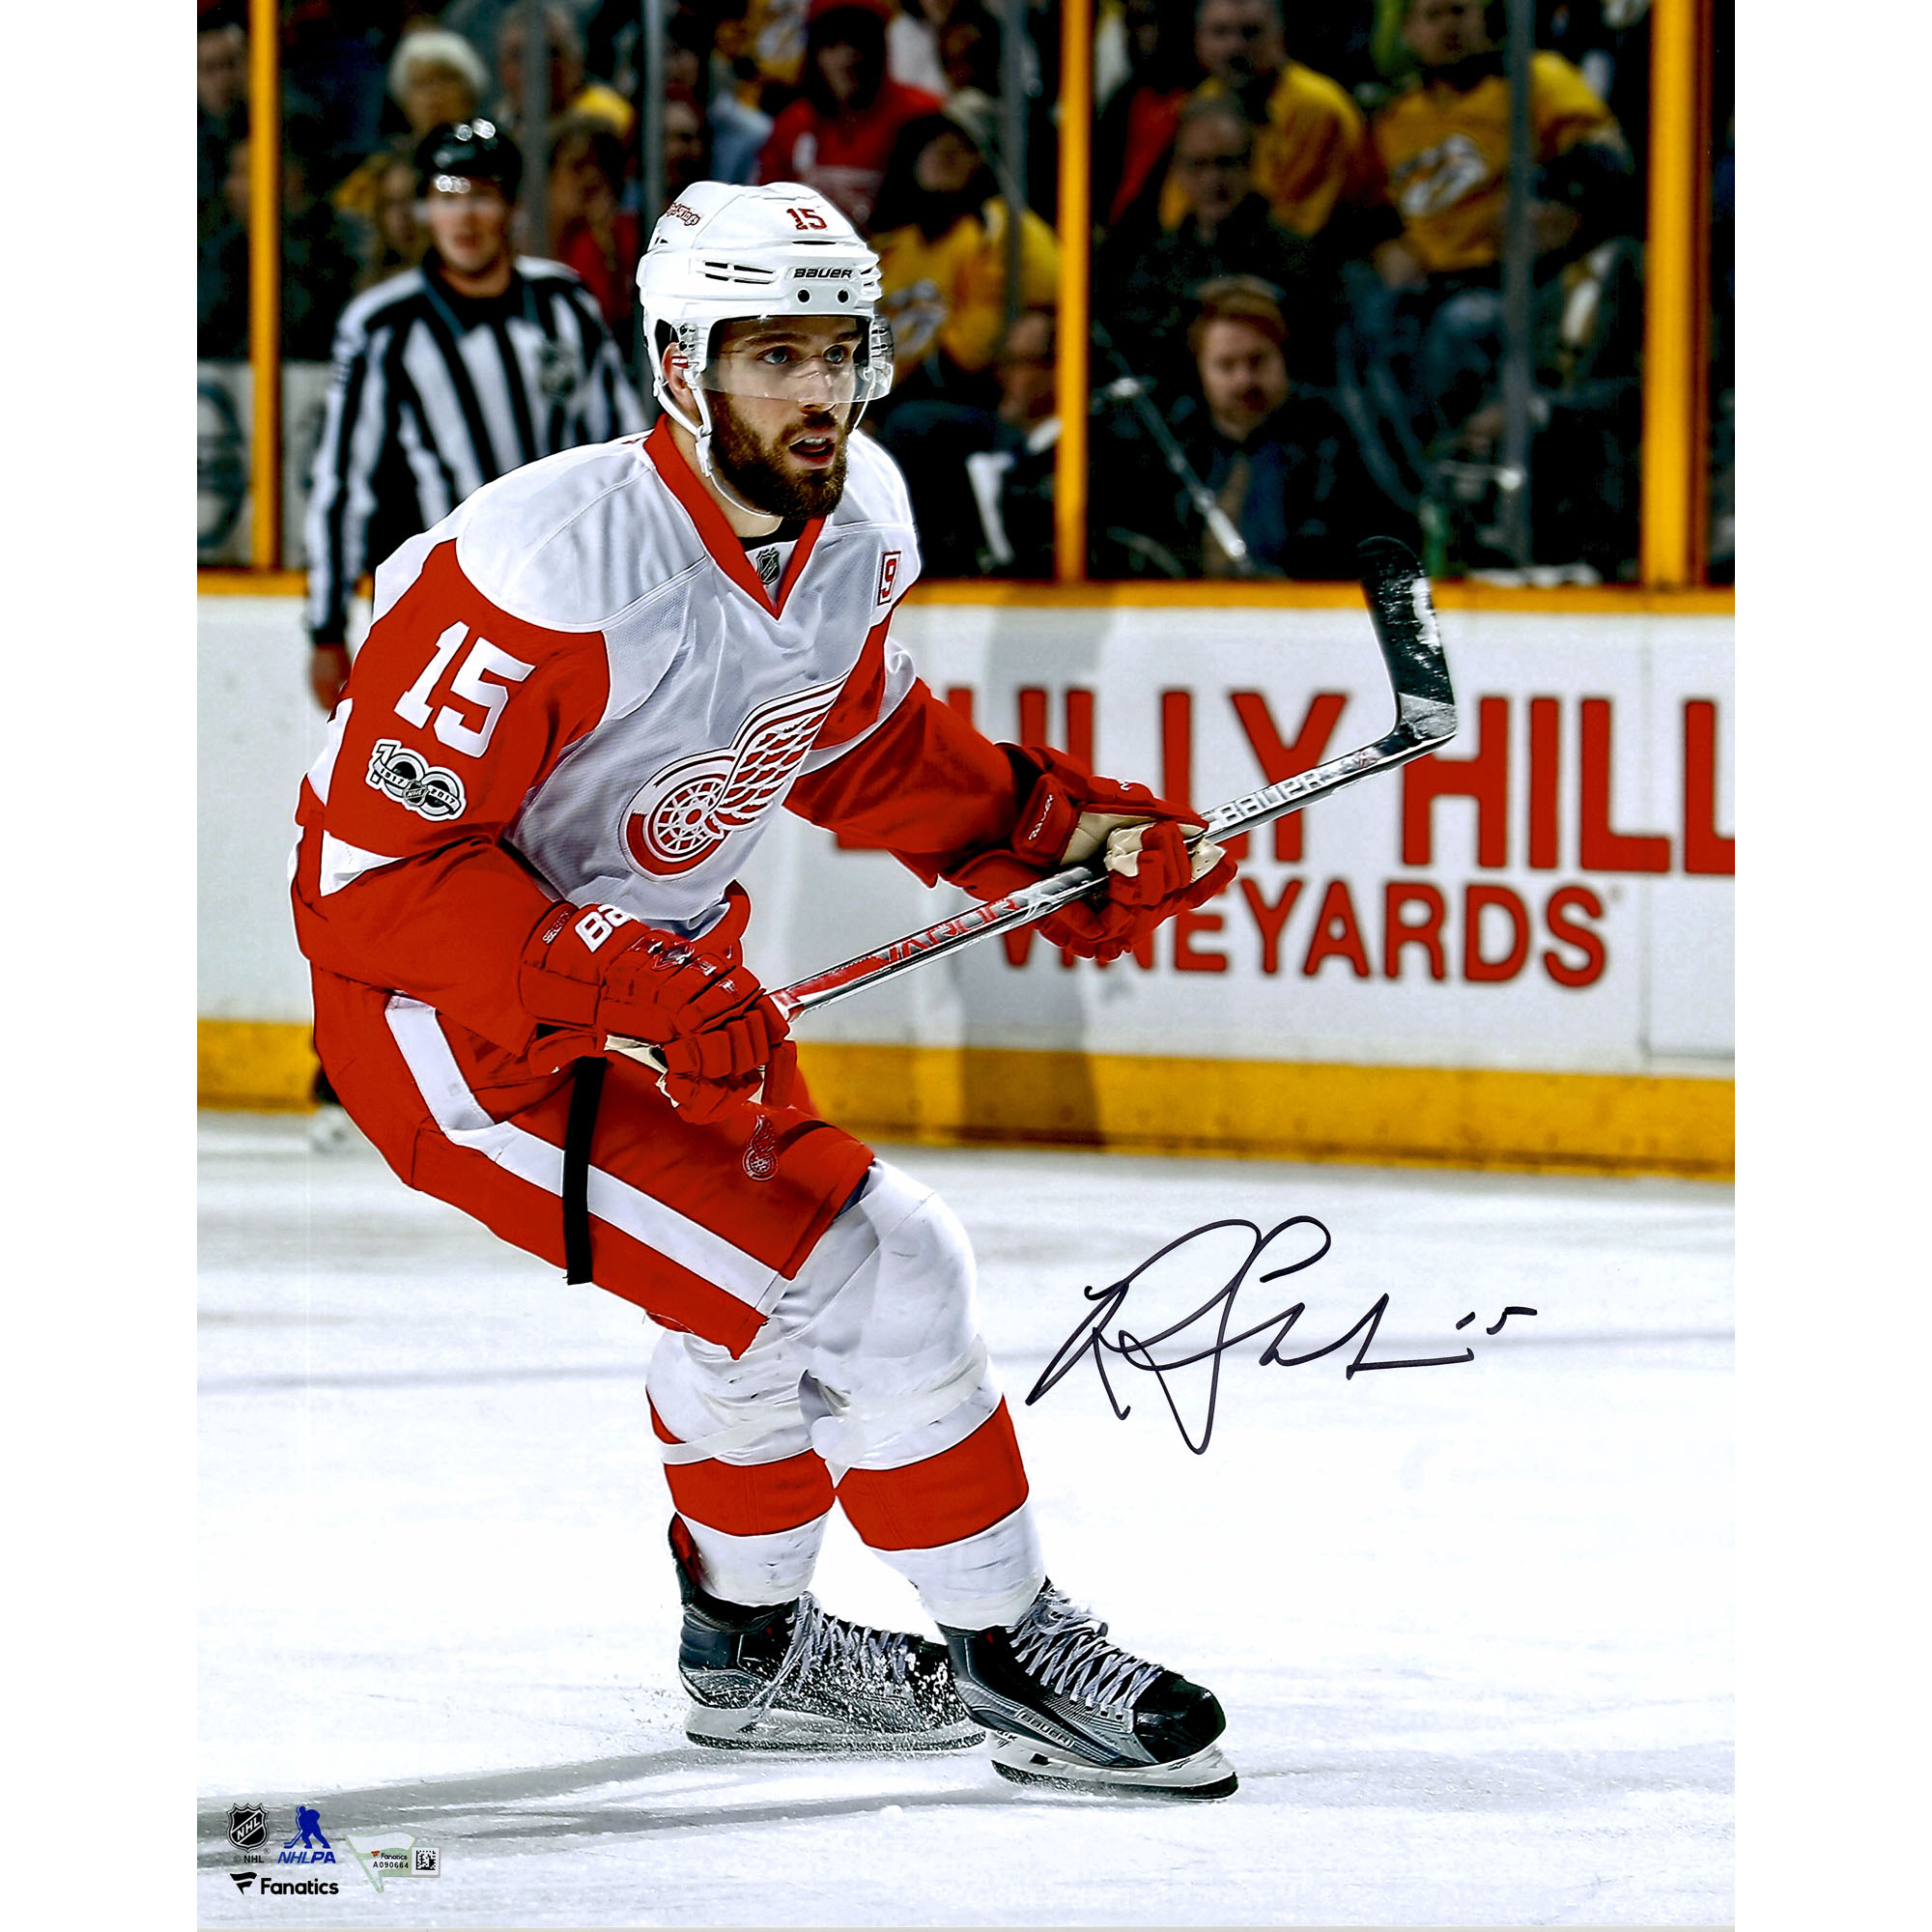 "Riley Sheahan Detroit Red Wings Fanatics Authentic Autographed 16"" x 20"" White Jersey Skating Photograph - No Size"